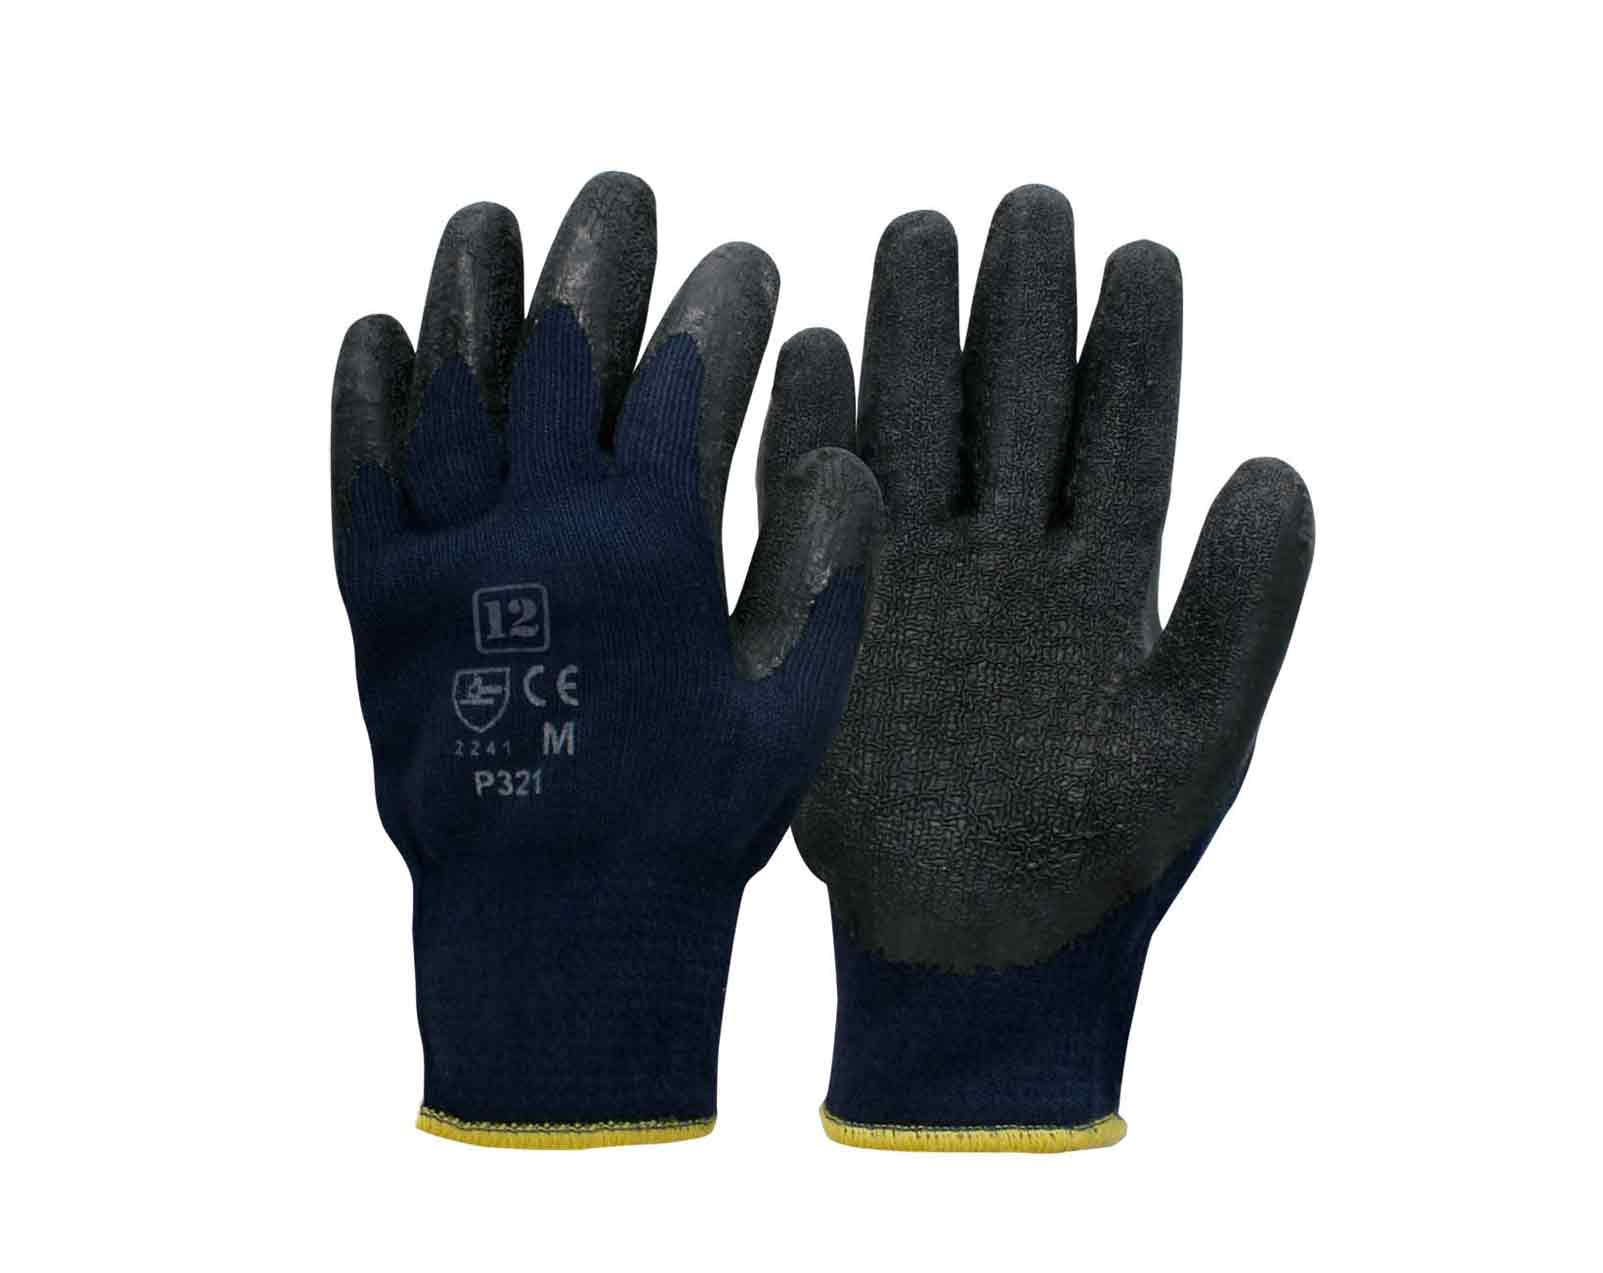 winterlined splendor frontier winter safety gloves P321